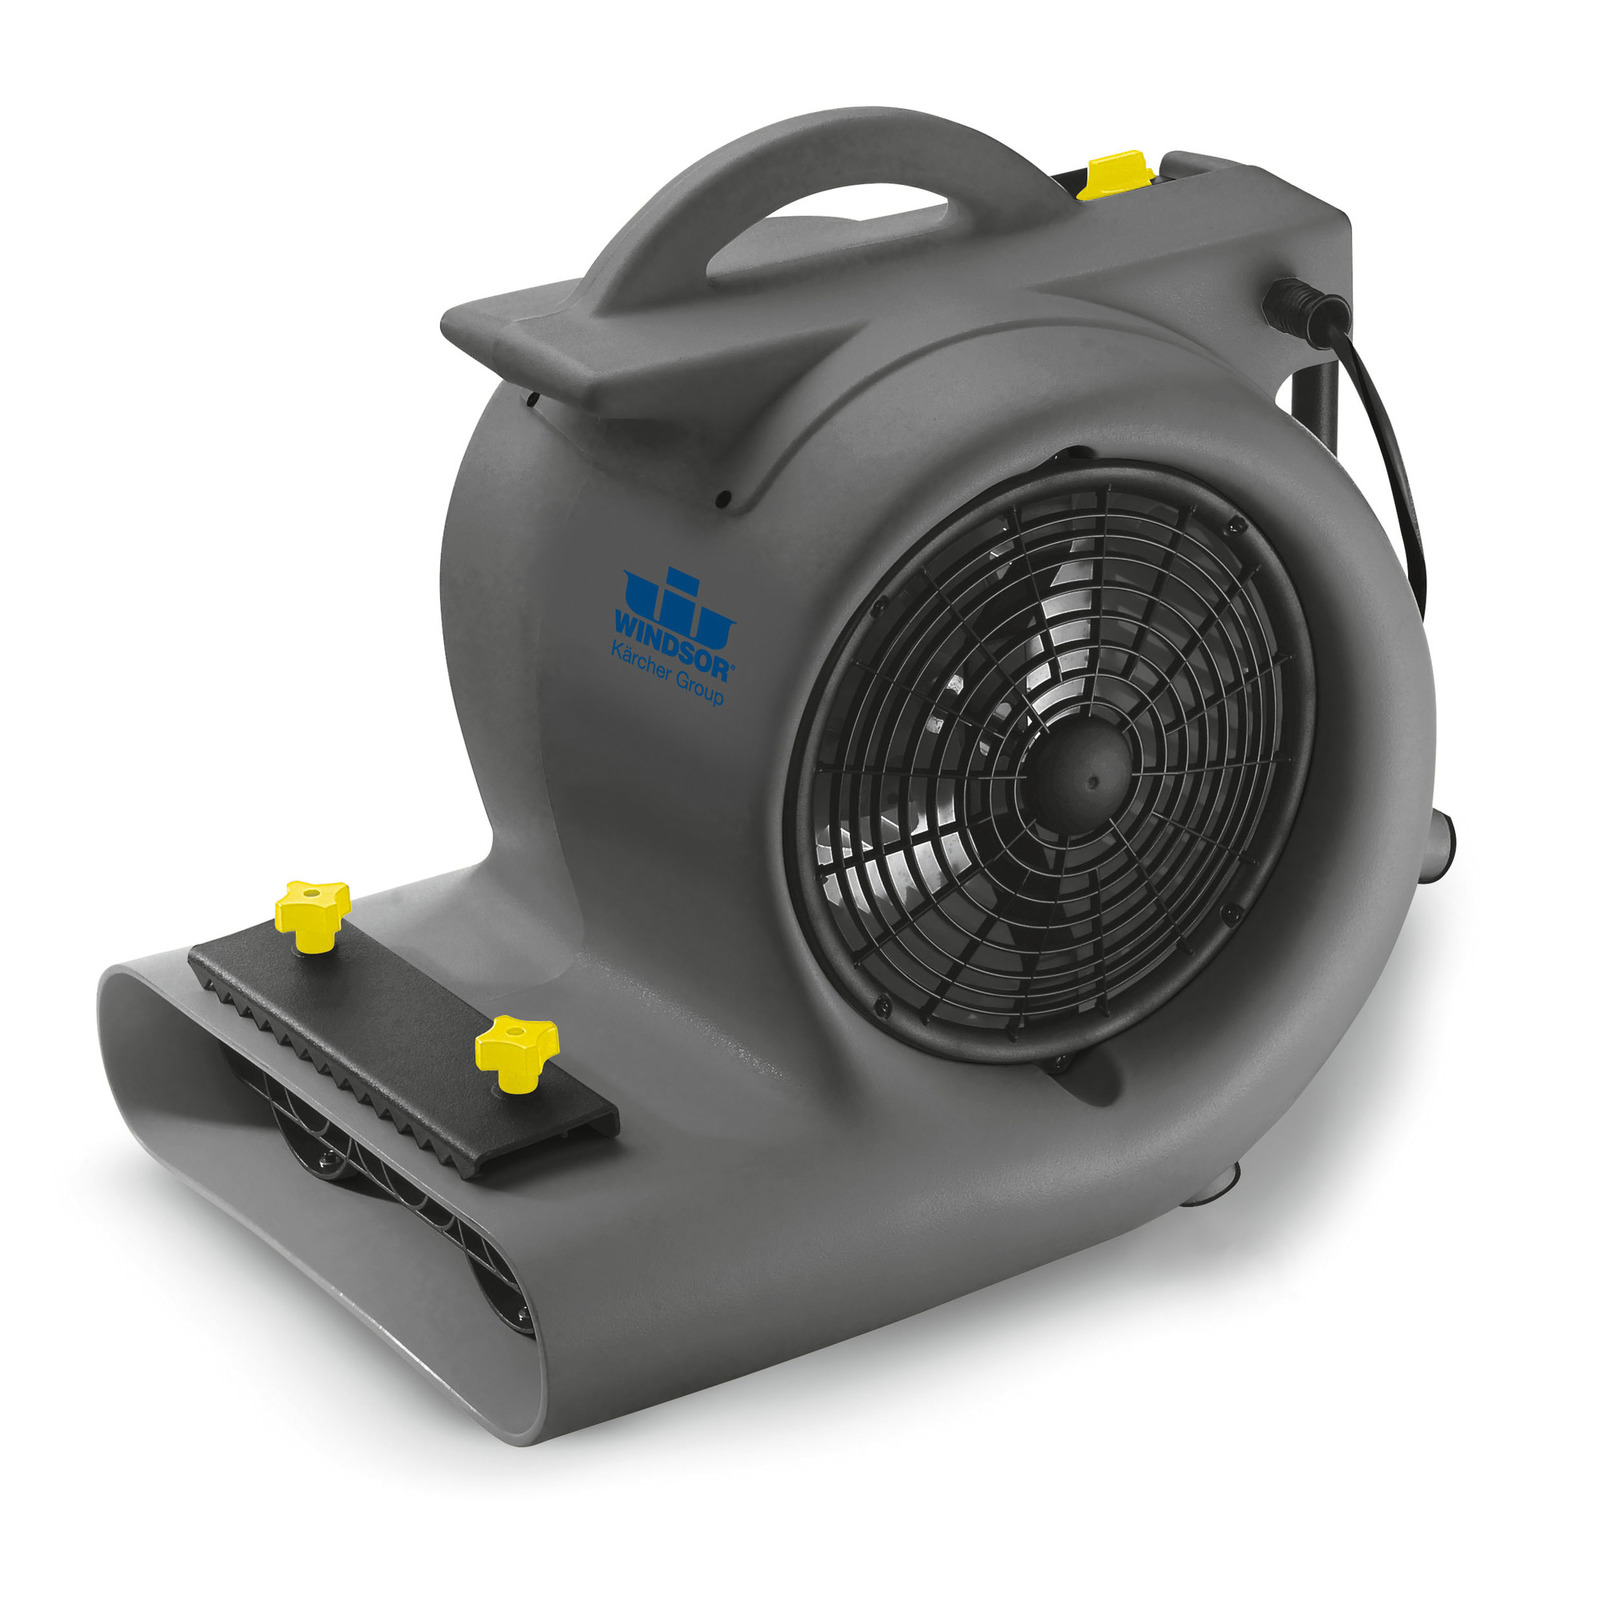 Air Blower Product : Air mover commercial portable blower carpet dryer